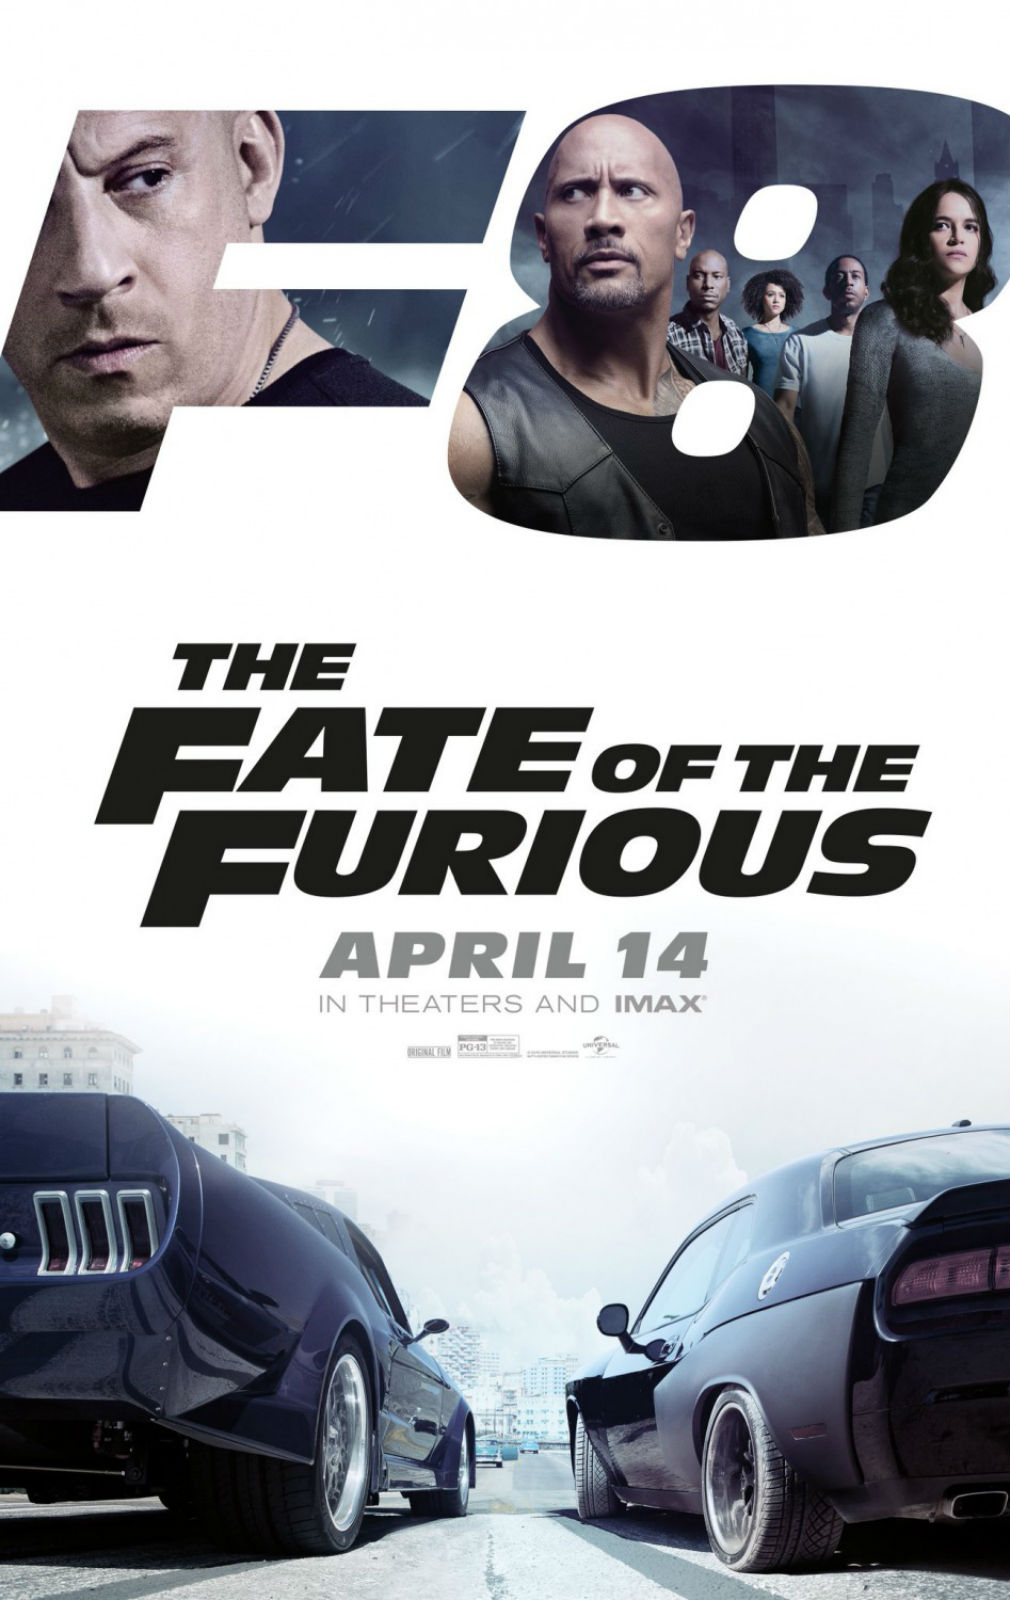 The Fate of the Furious 2017 EXTENDED TRUEFRENCH HDRip x264-STR4NGE